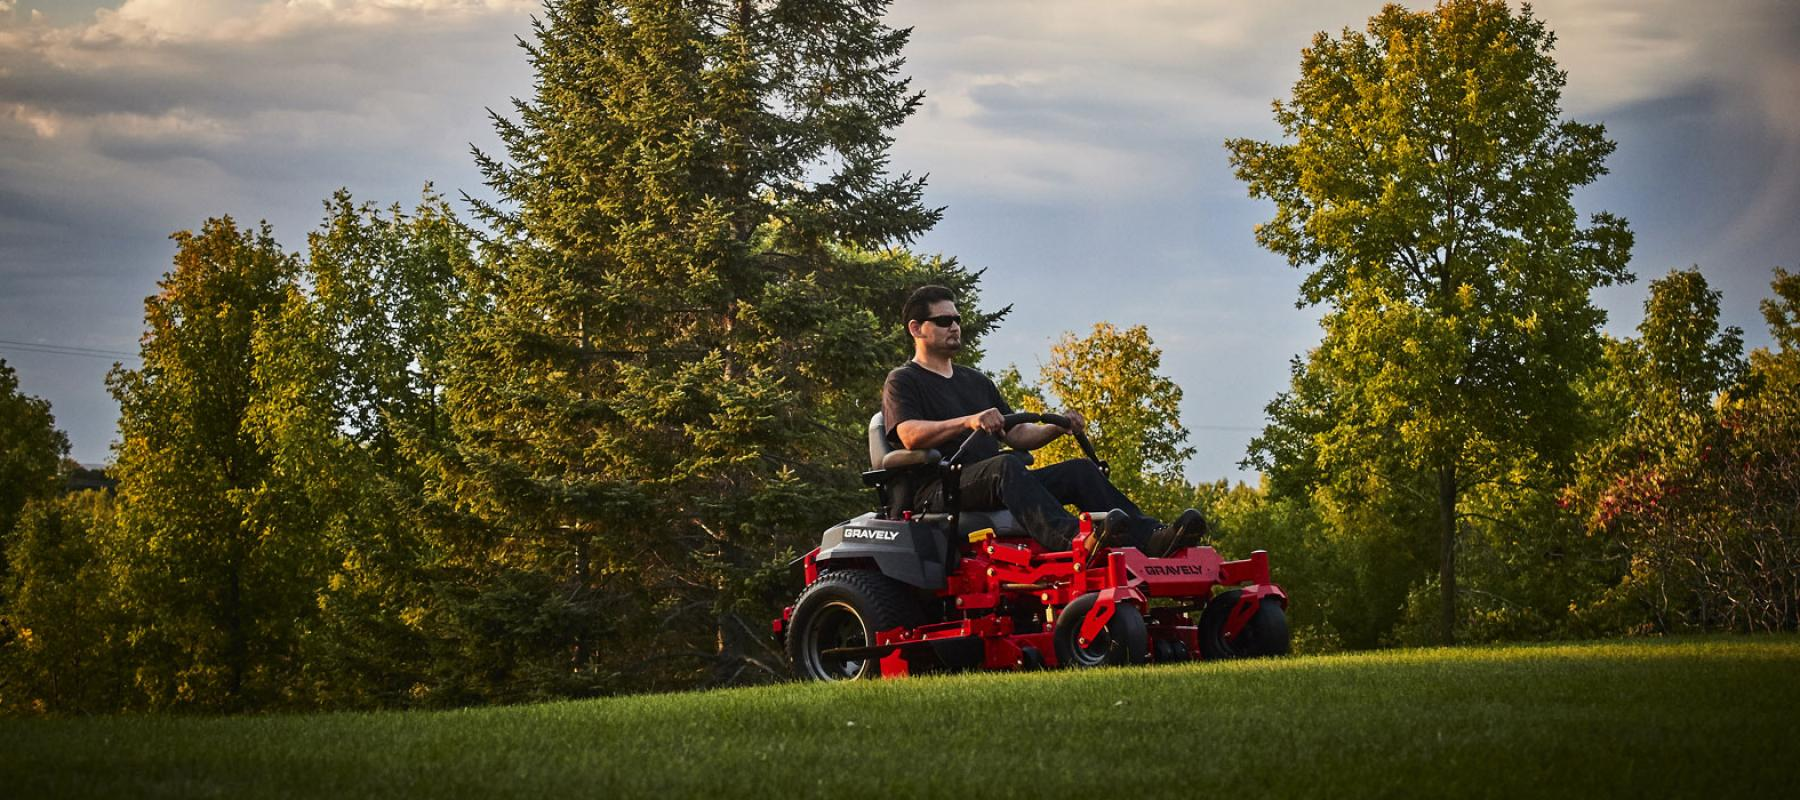 Outdoor Power, LLC - Stop down to check out our full line of riding mowers.